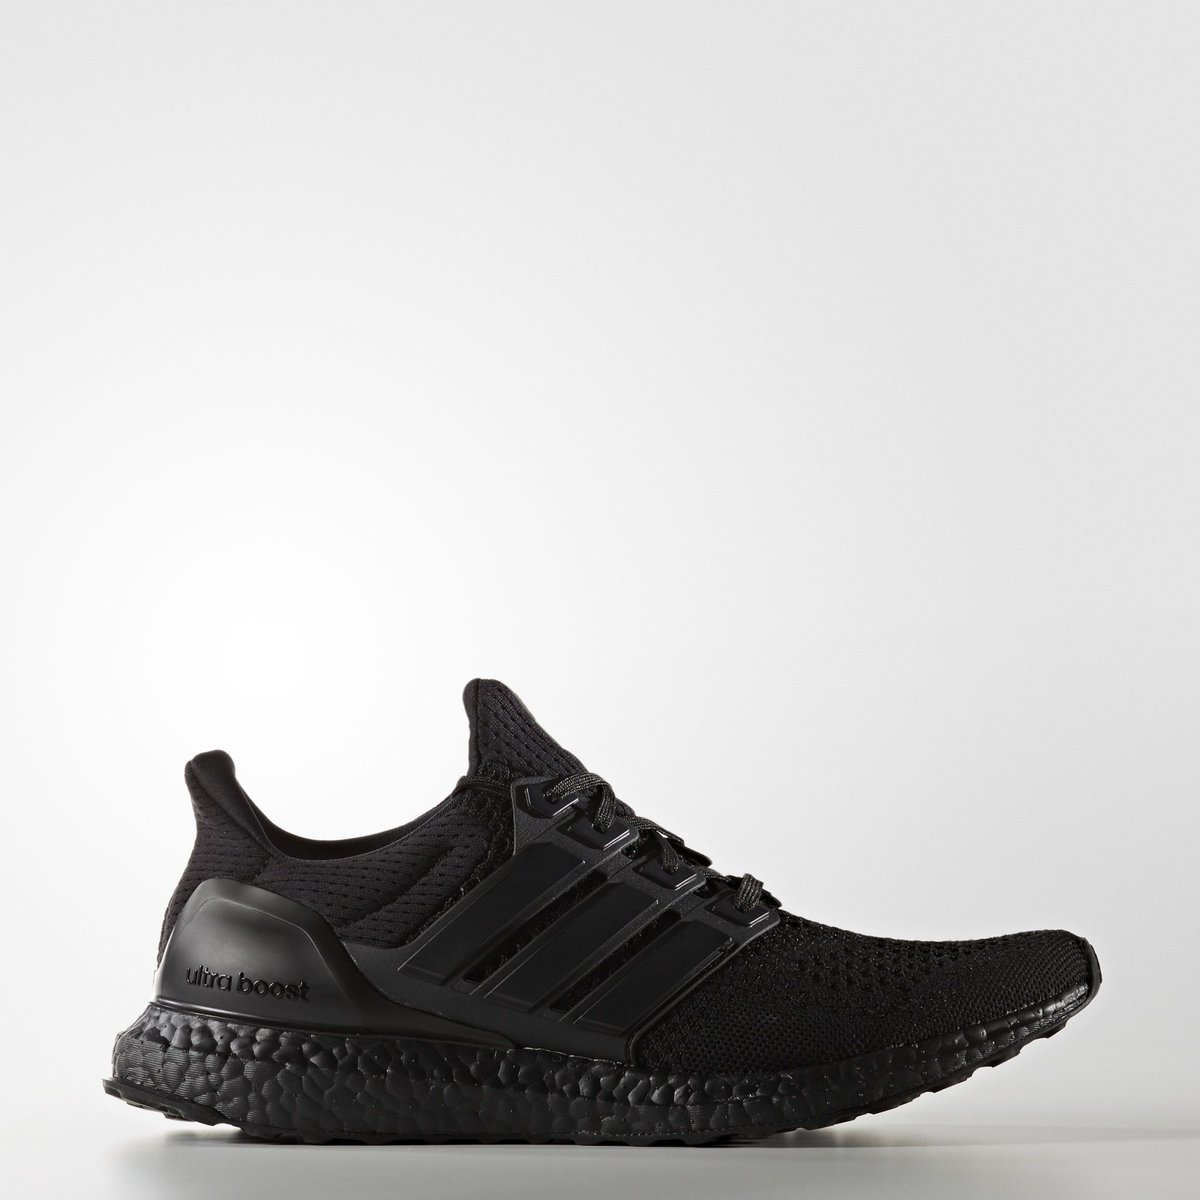 d1901c8b2ae The long-awaited Triple Black Ultra Boost is scheduled to release in the US  on Thursday